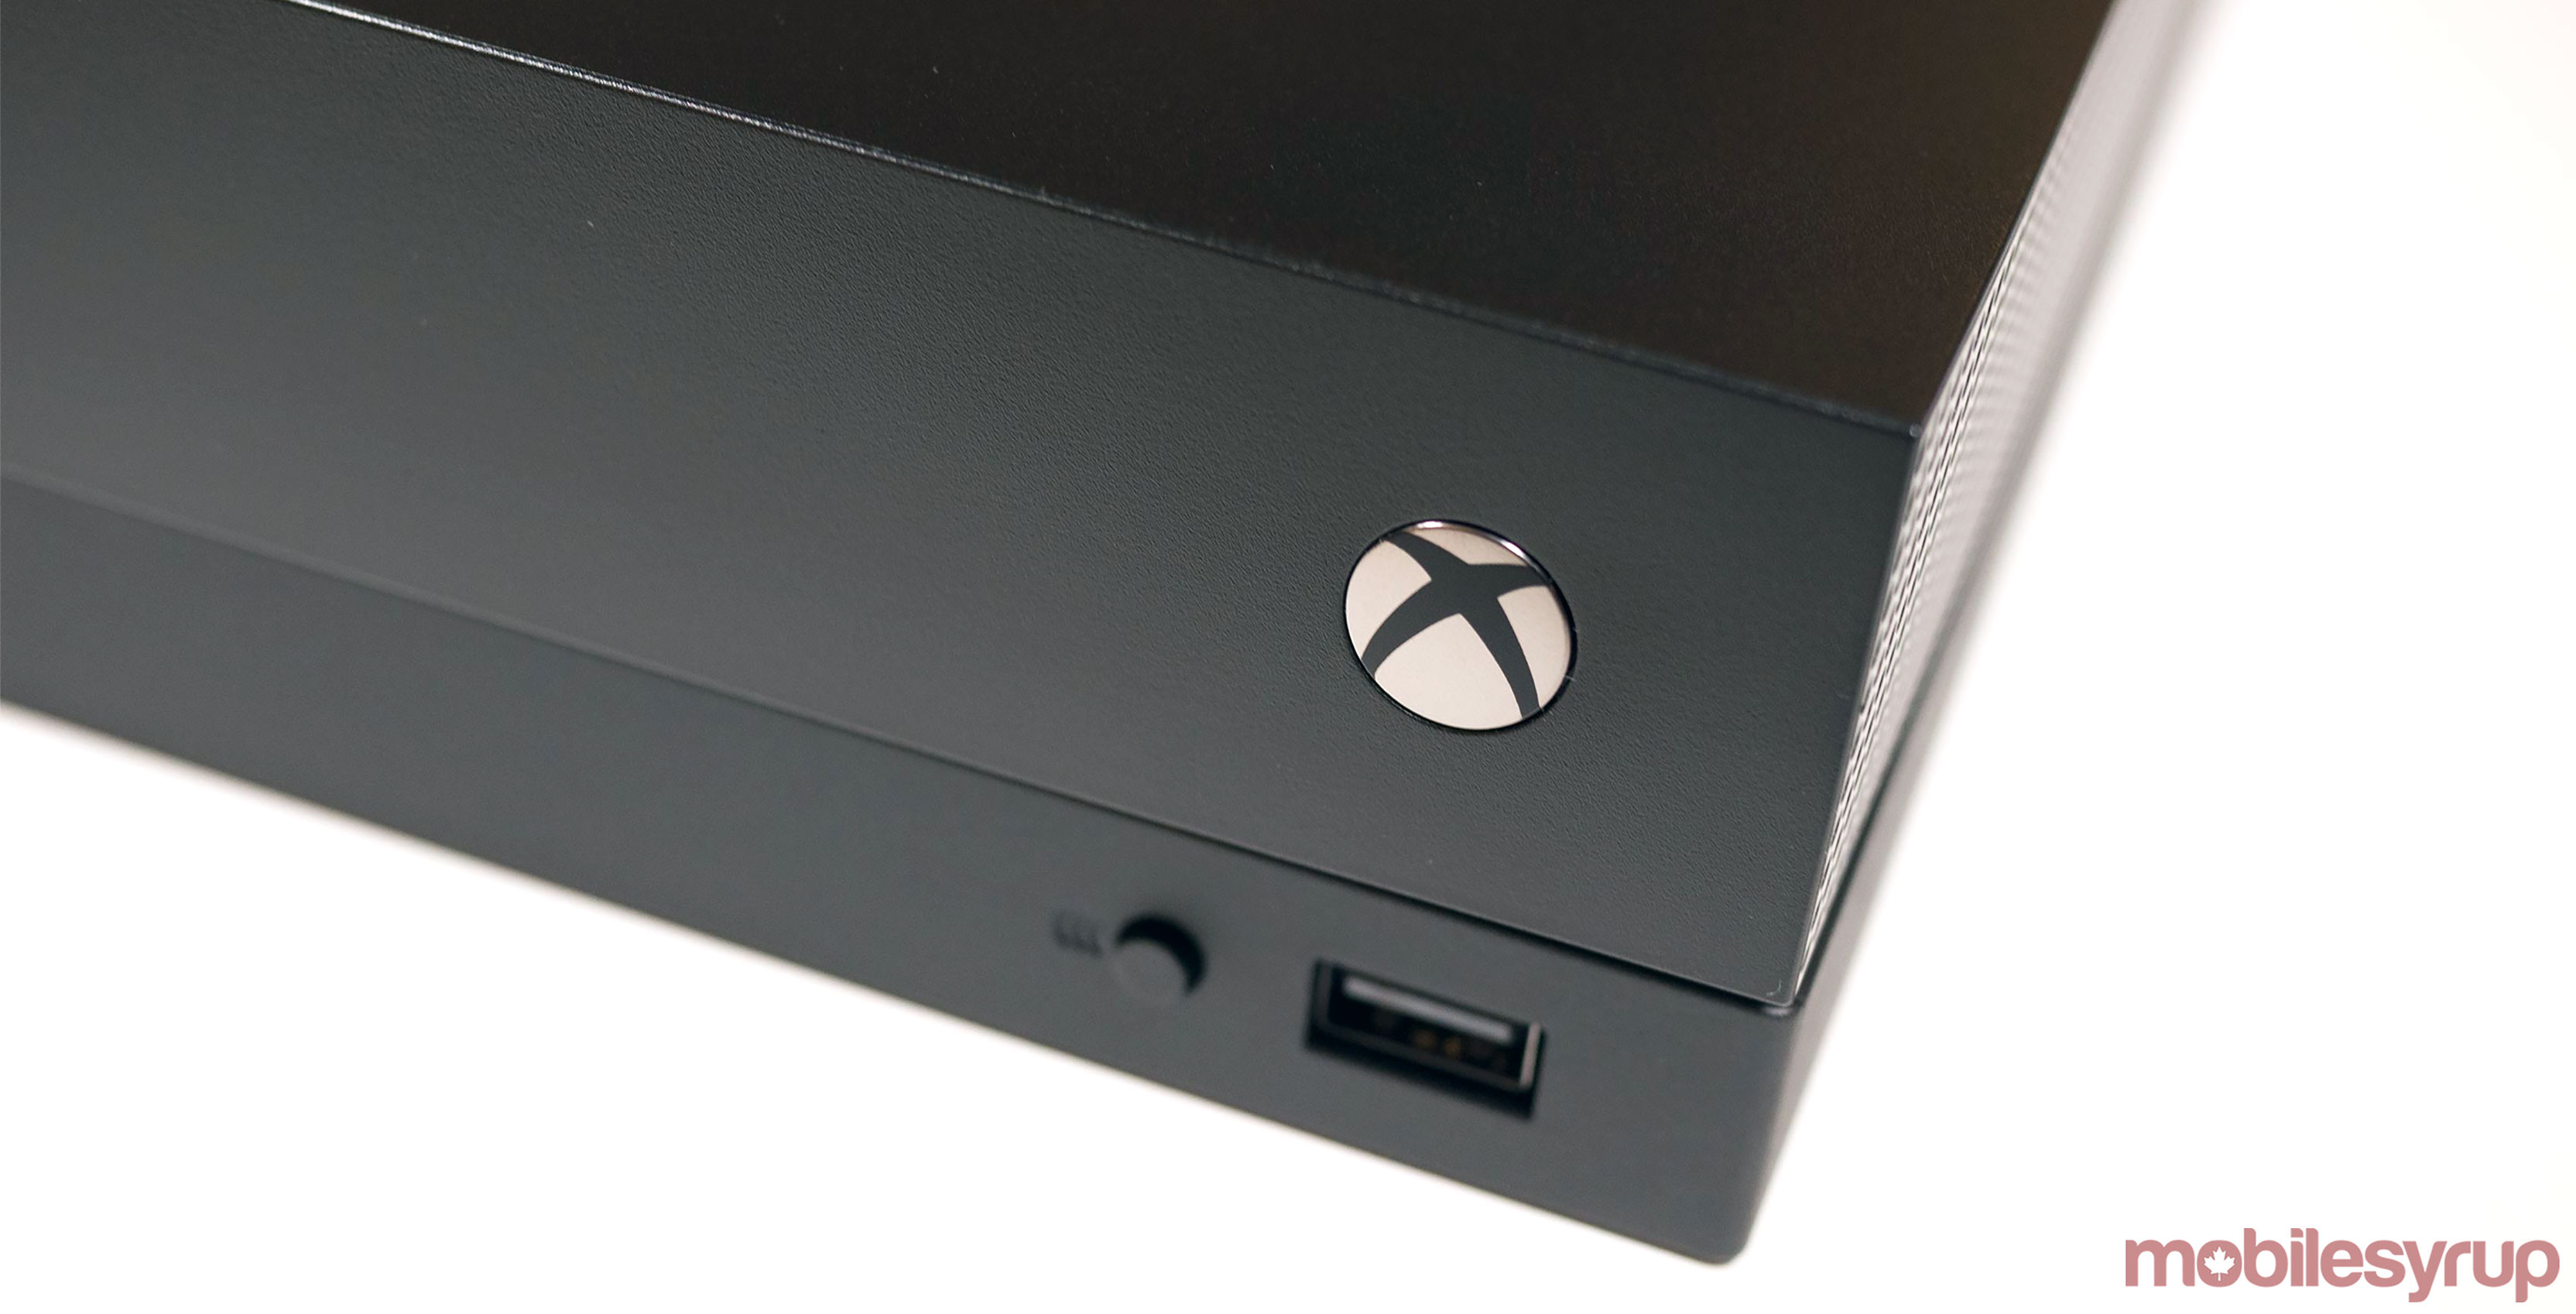 Microsoft's next-gen consoles reportedly arriving in 2020, codenamed Anaconda and Lockhart